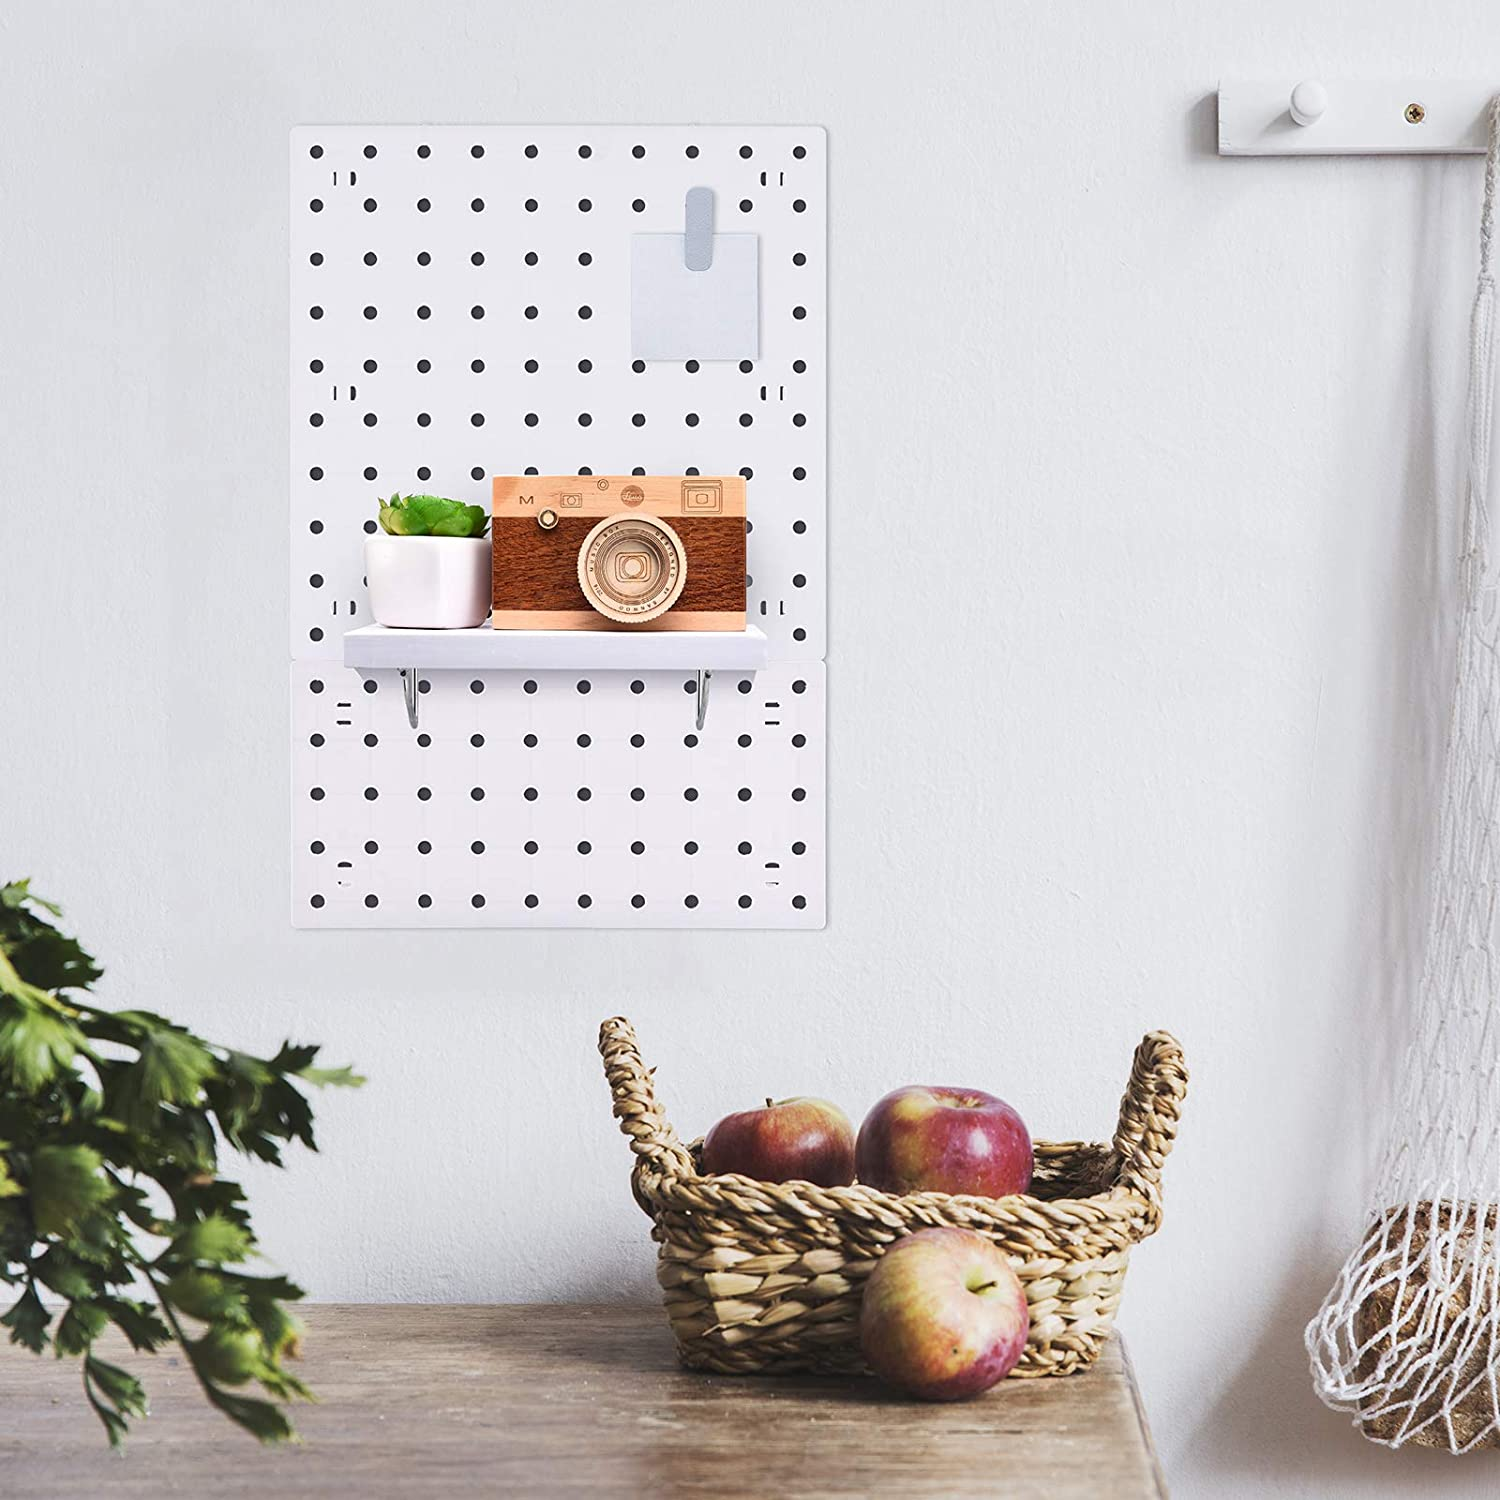 Wall Storage Ornaments Display Riakrum Pegboard Shelf Kit Wooden Pegboard Storage Wall Shelf and Hooks Pegboard Accessories for Crafts Organizing